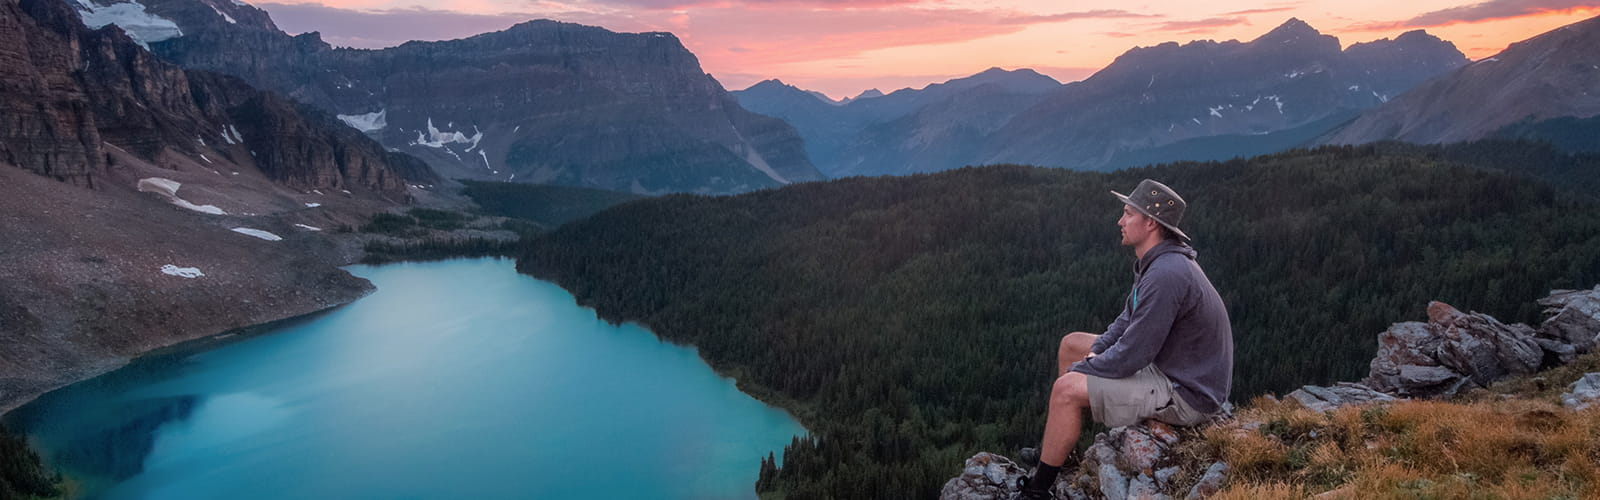 Person sitting on a mountainside overlooking a lake with a sunset in the background